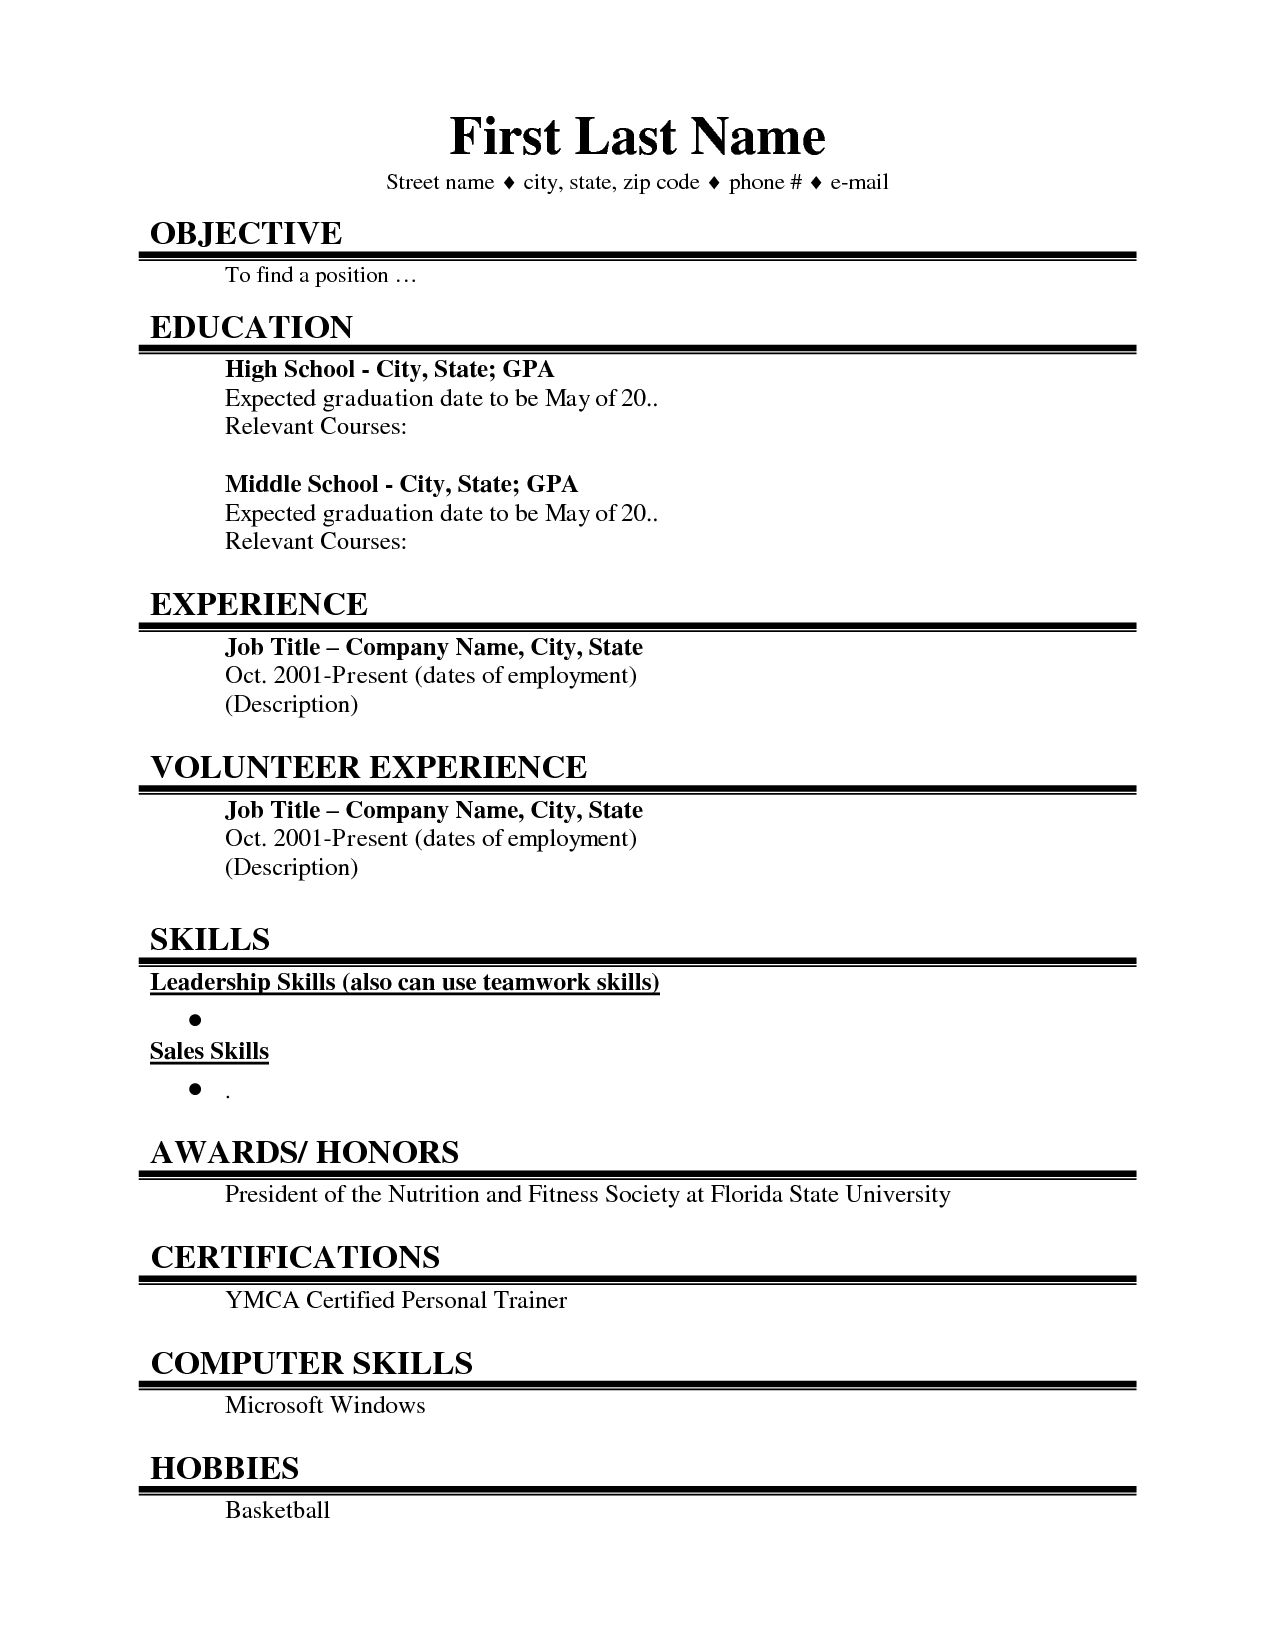 first job resume google search - Resume Examples First Job Objective